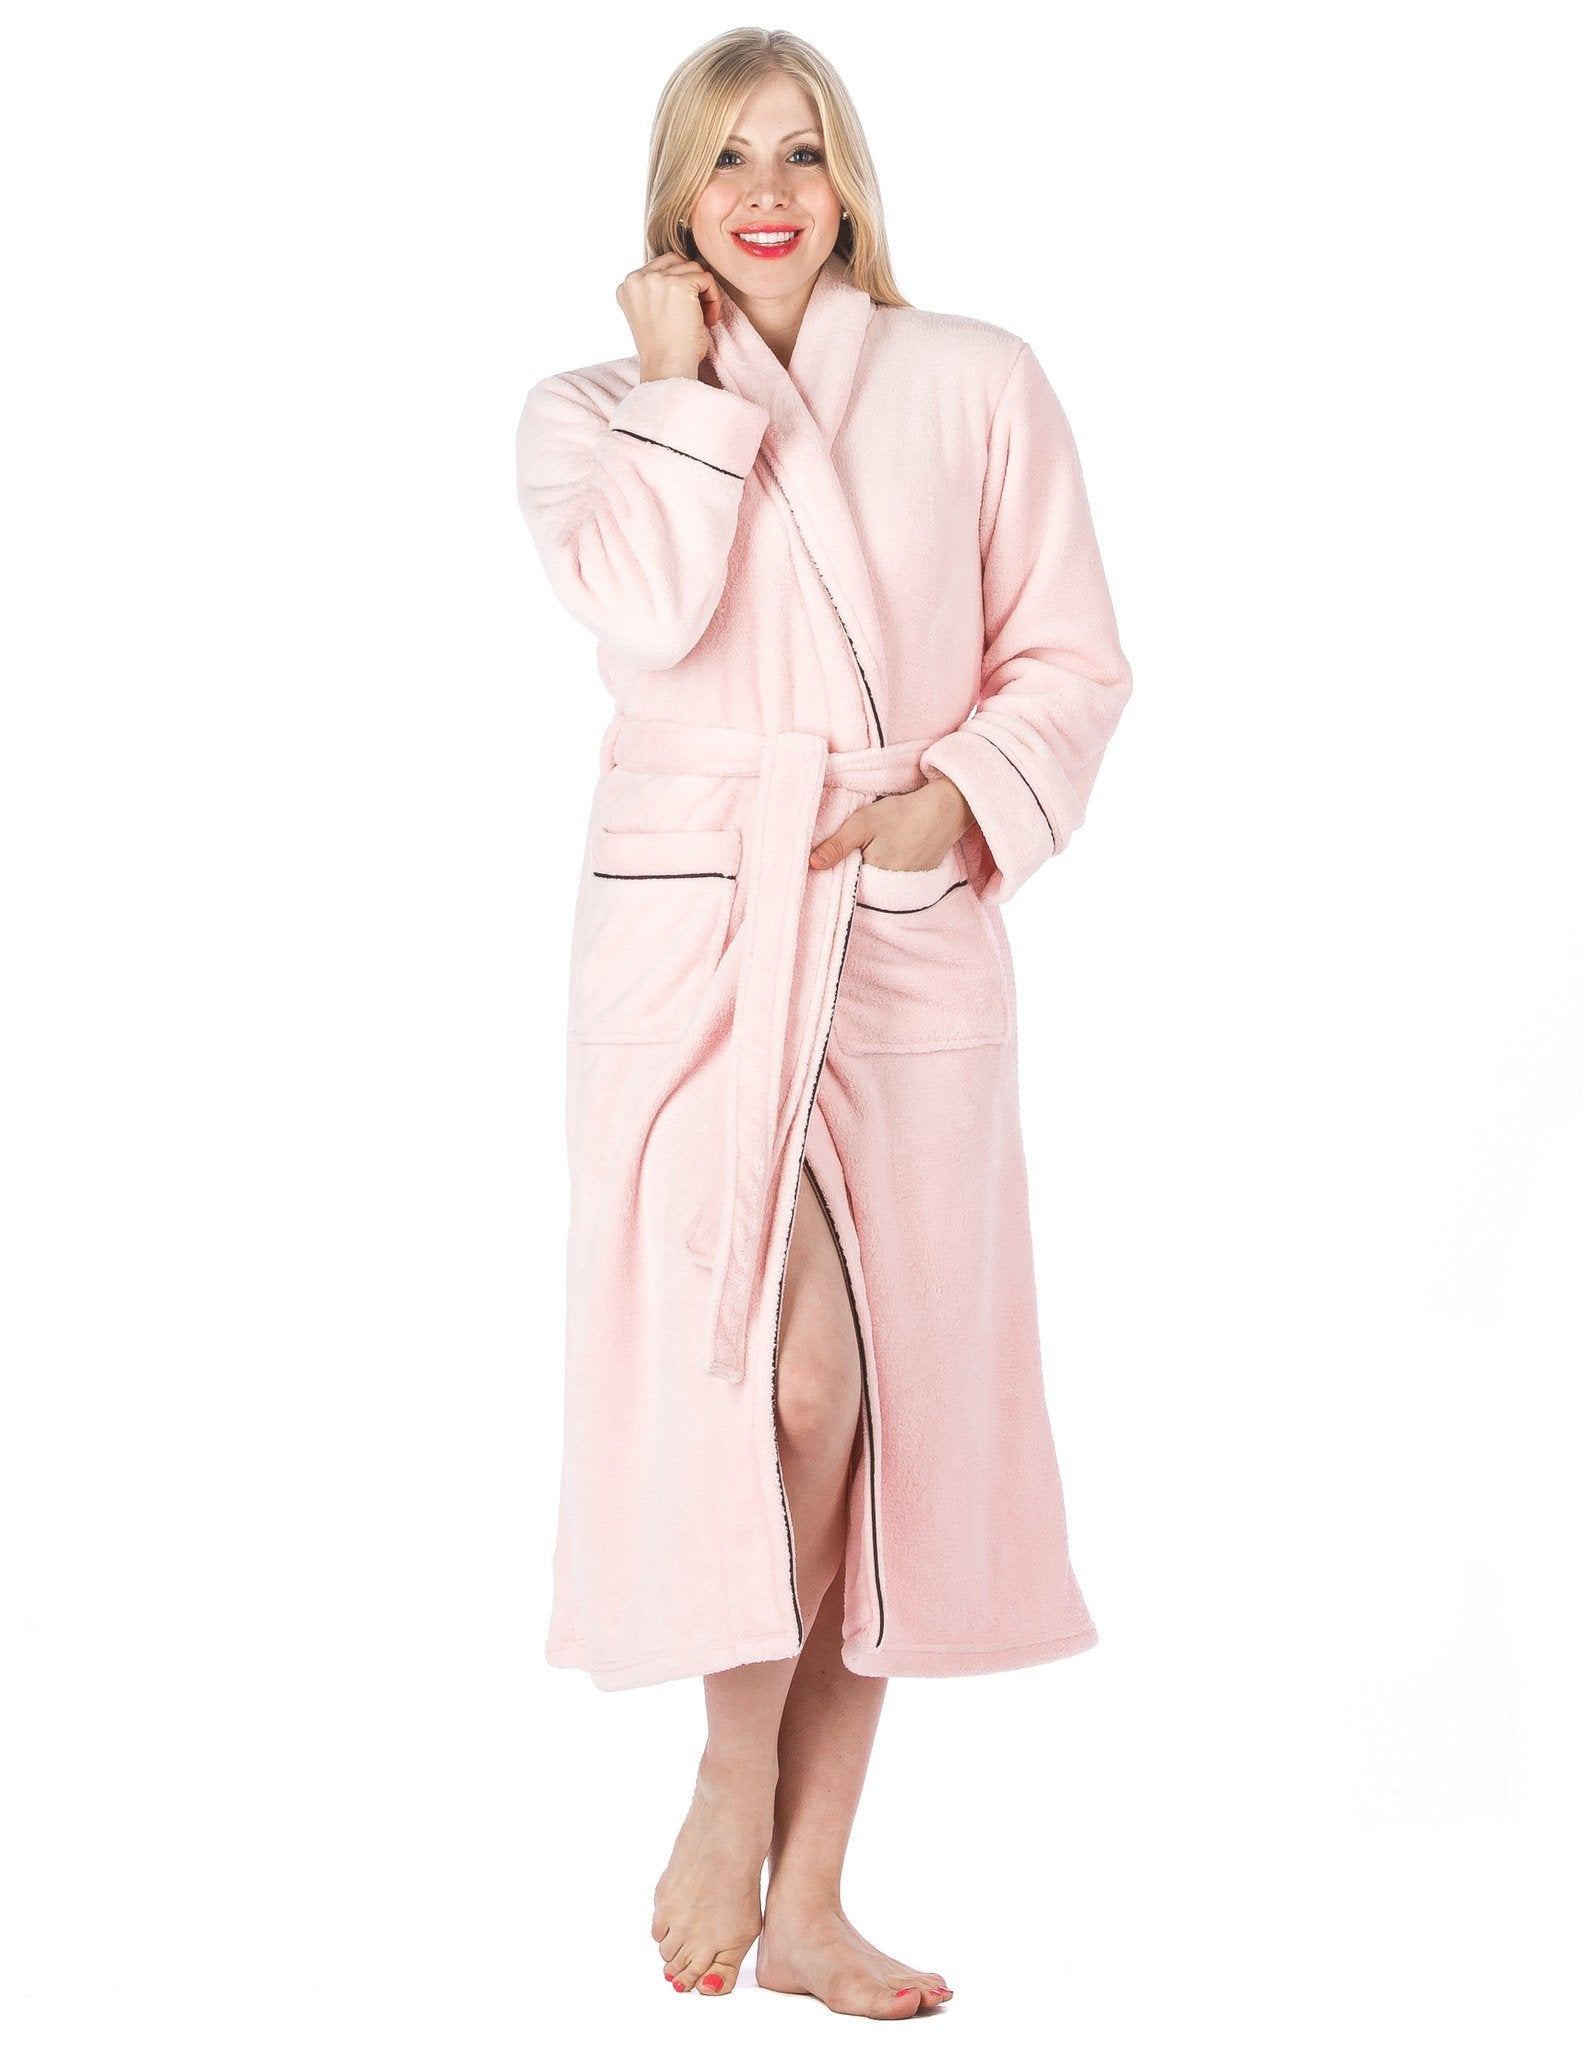 Women's Premium Coral Fleece Plush Spa/Bath Robe - Light Pink